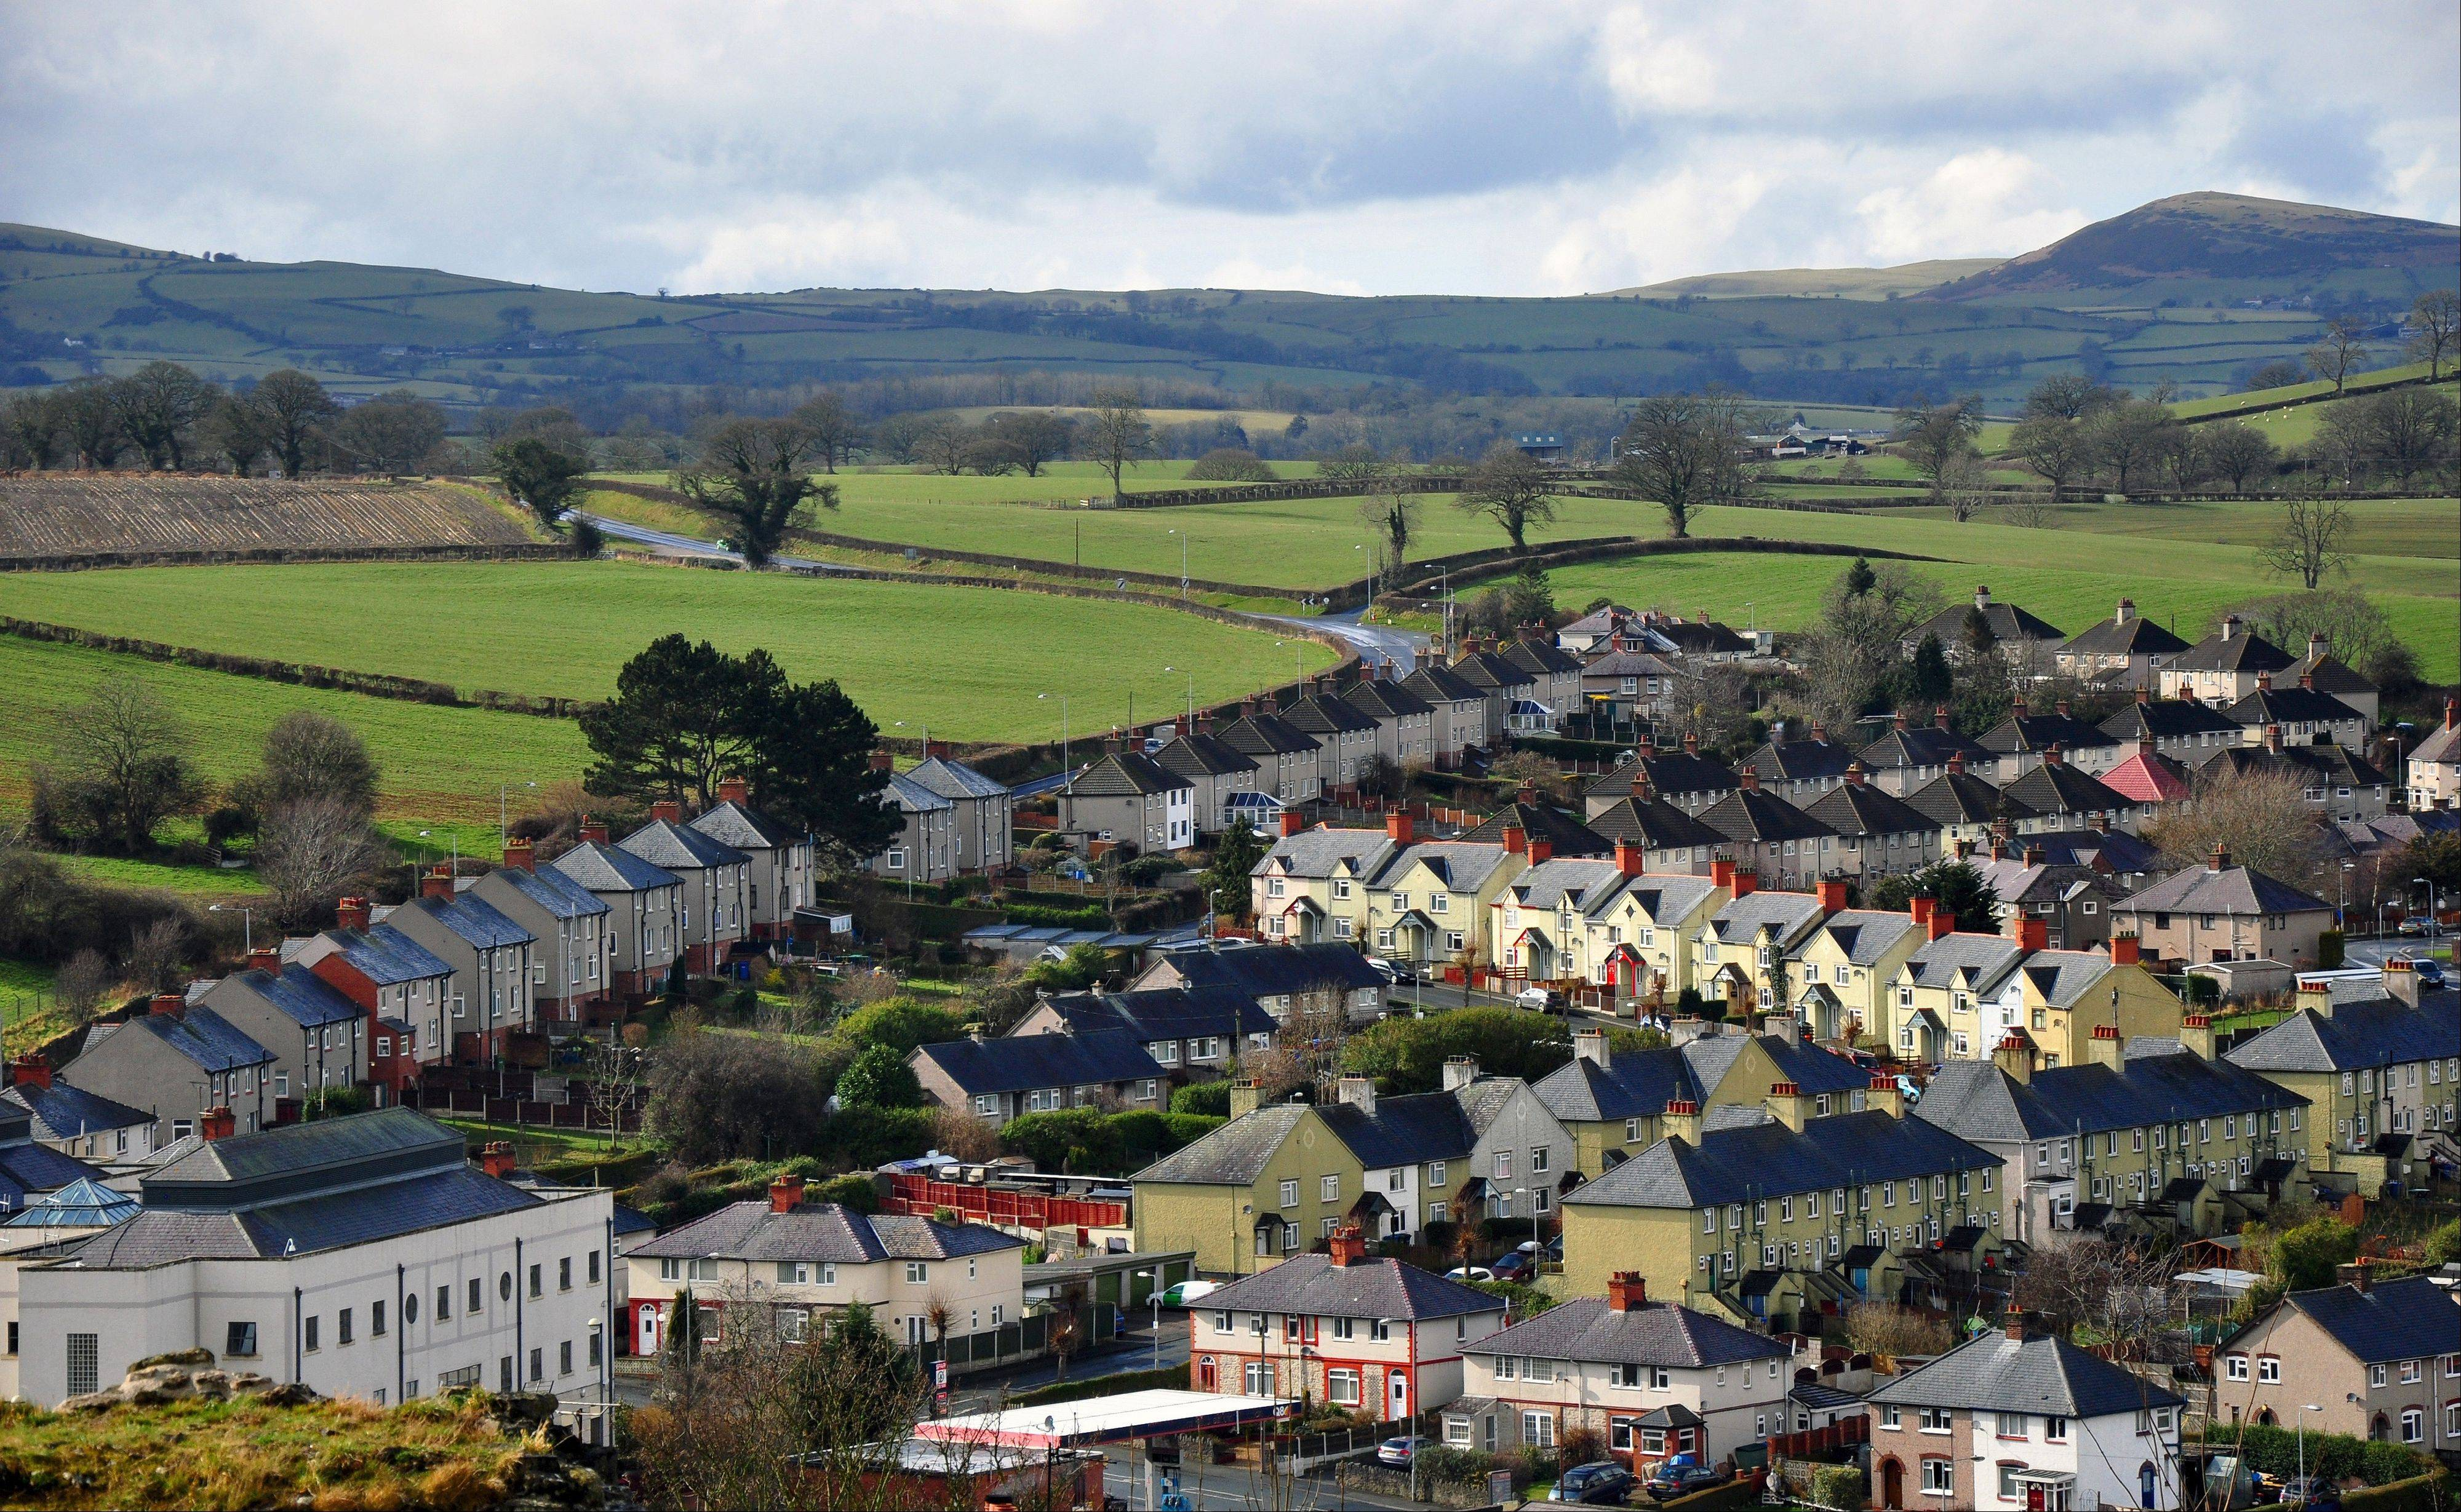 Houses line up in pretty rows in the town of Denbigh in the North Wales Borderlands.